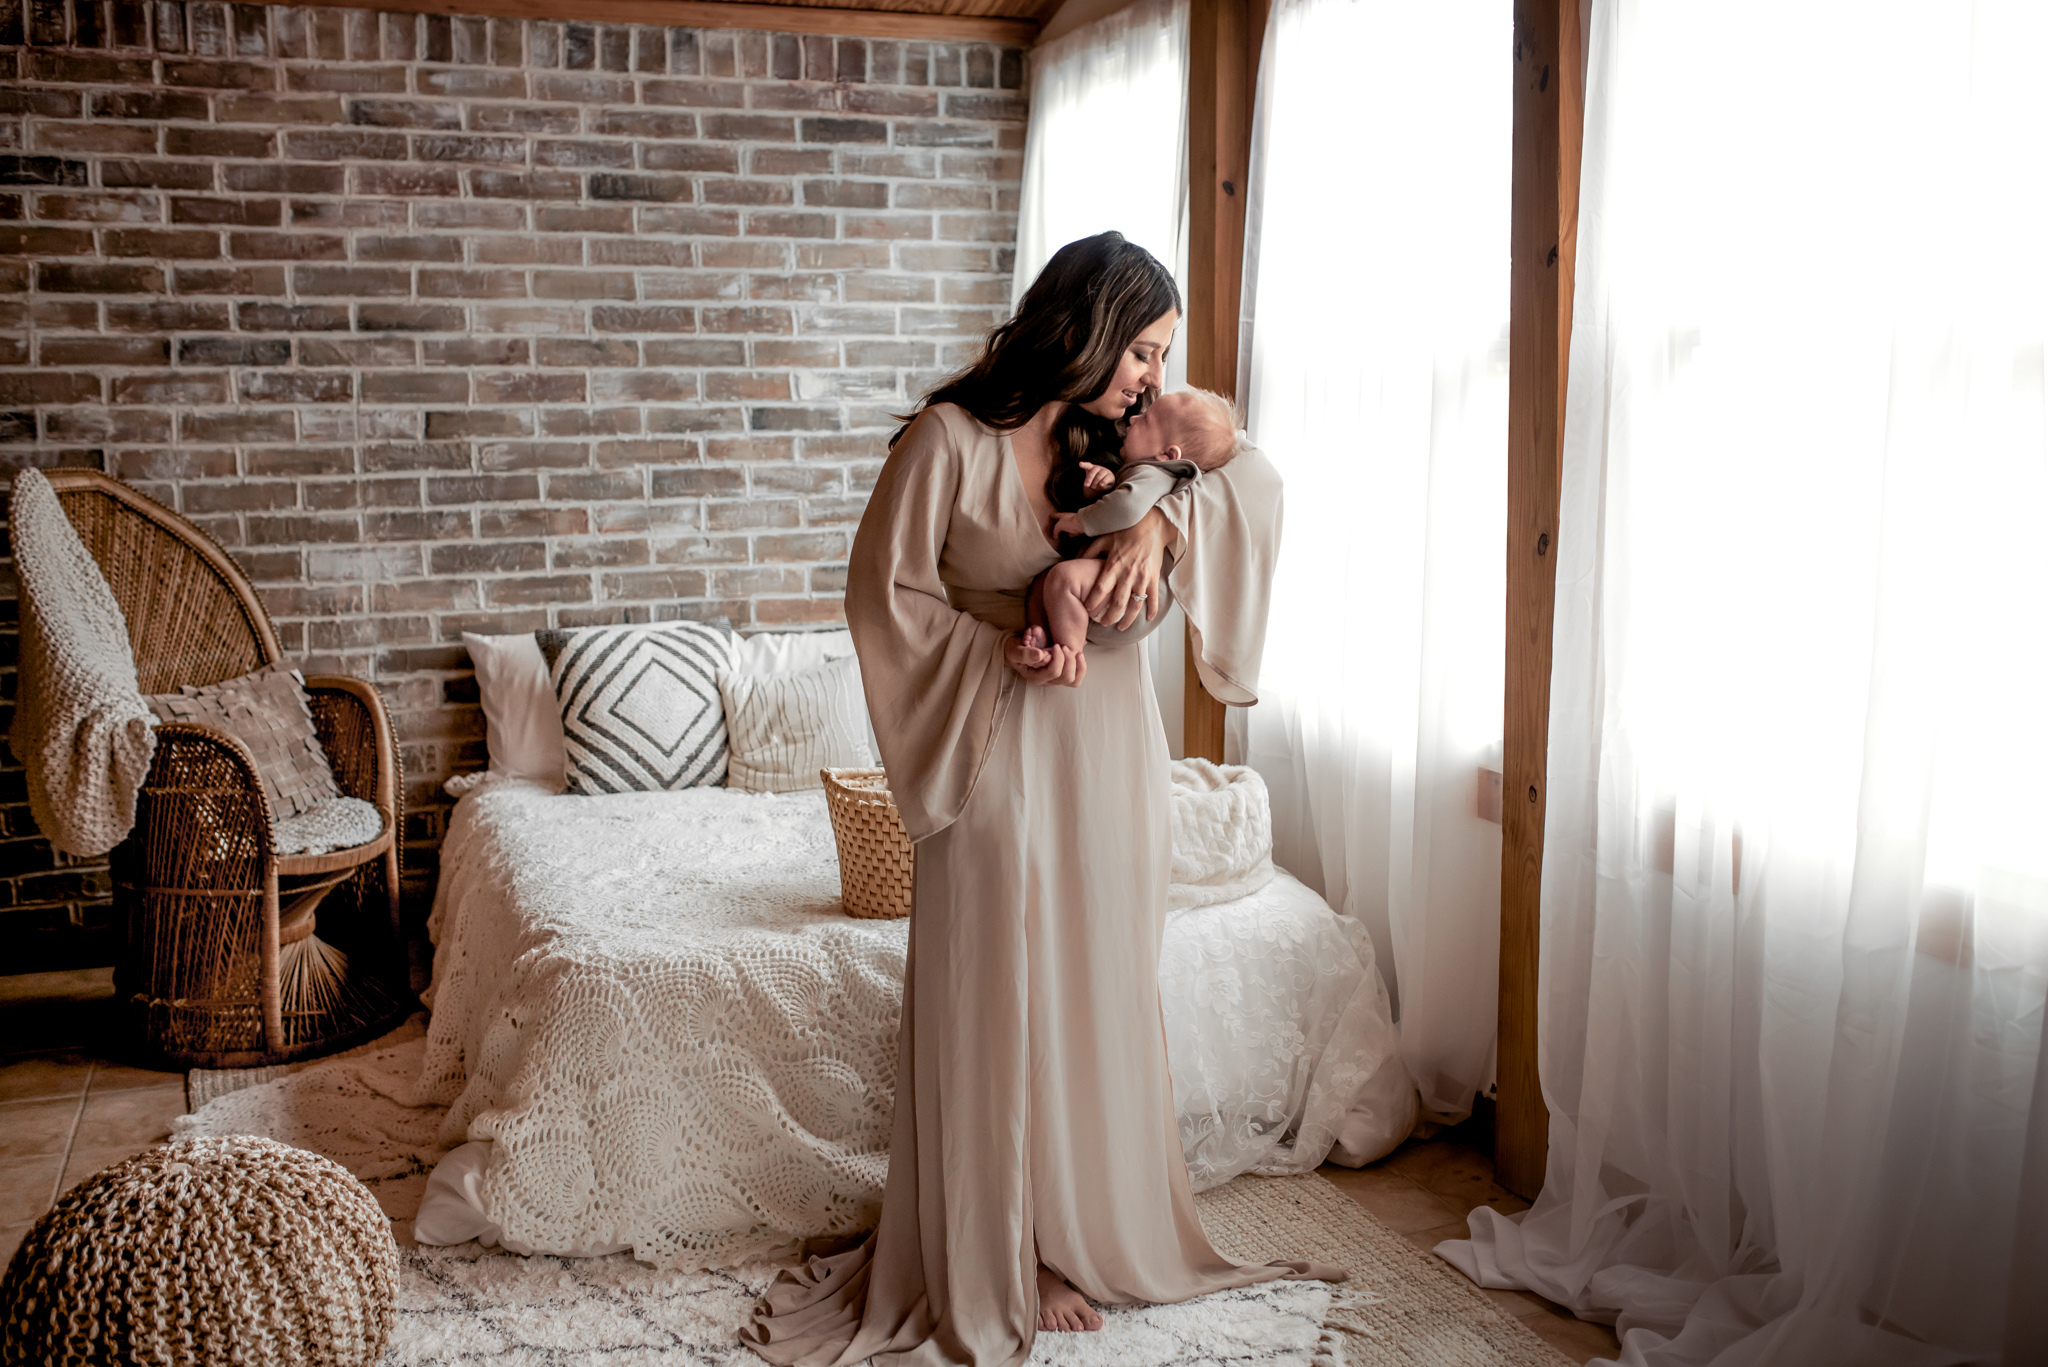 Beautiful mom and her baby boy in a Houston, TX natural light, boho studio with a brick wall, textures accents, peacock chair, and neutral details.